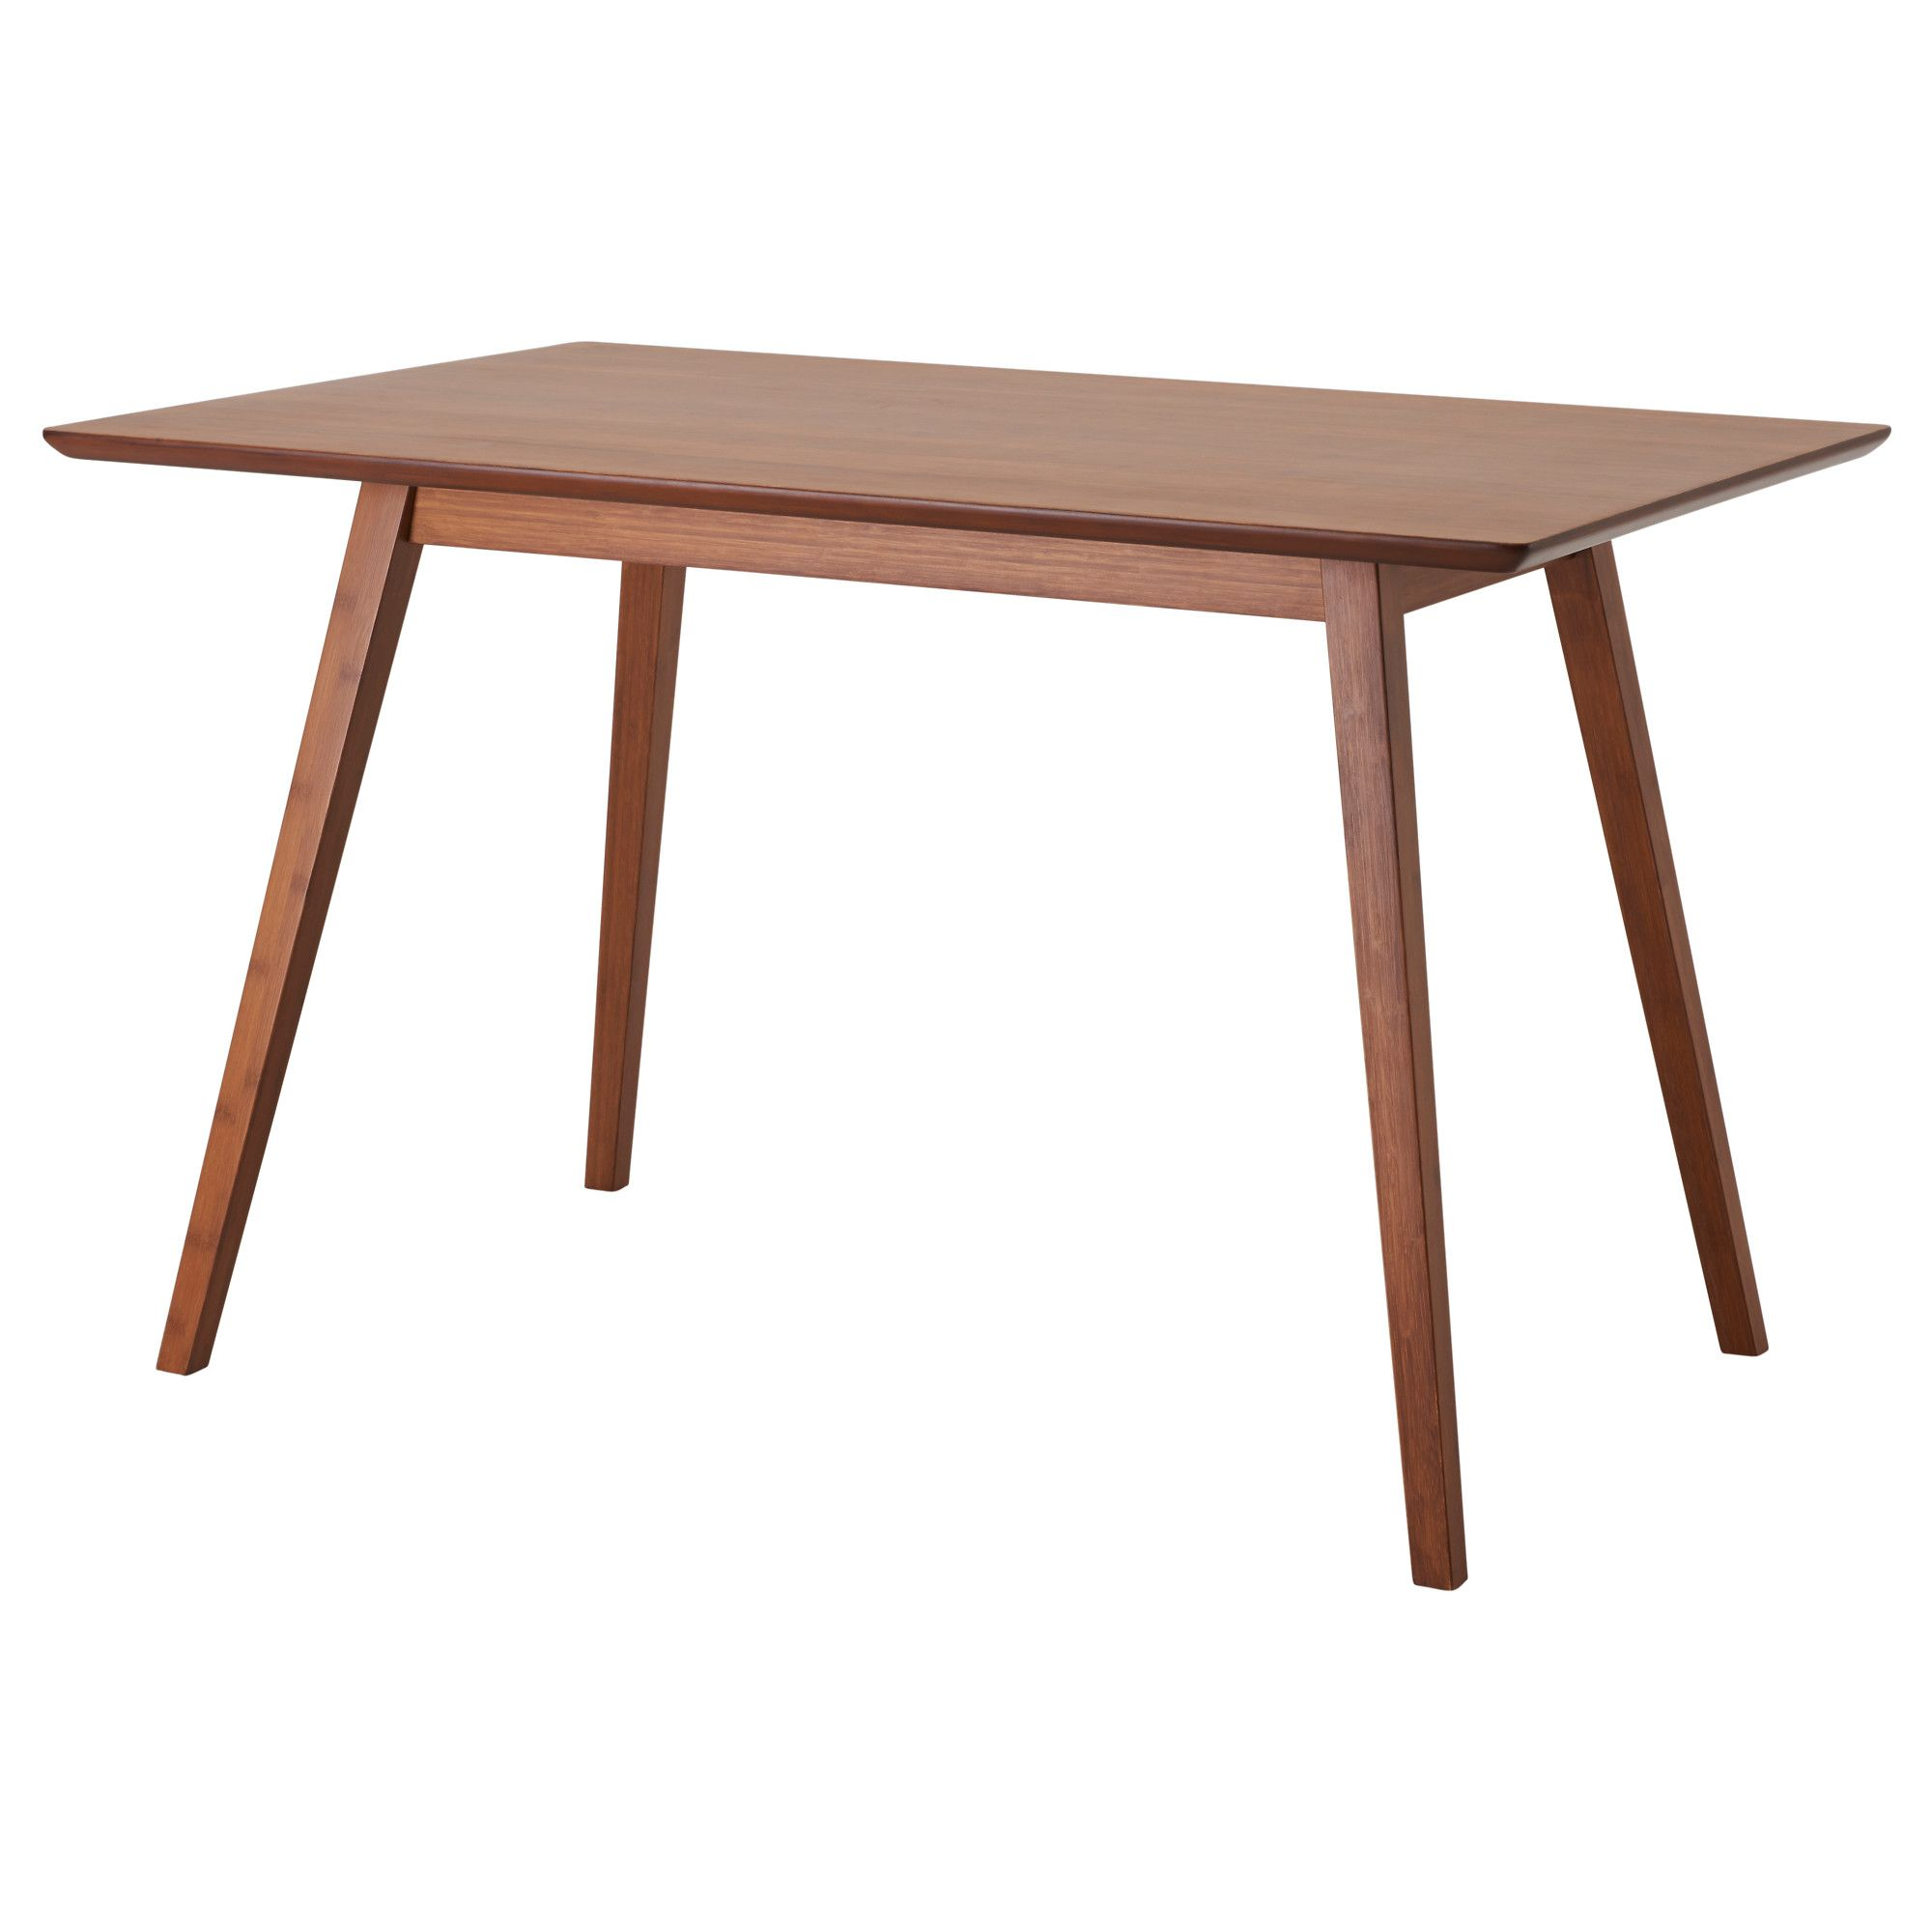 FANOM Dining Table Bamboo Xx Cm Bamboo Art Tables And House - Ikea dining room table